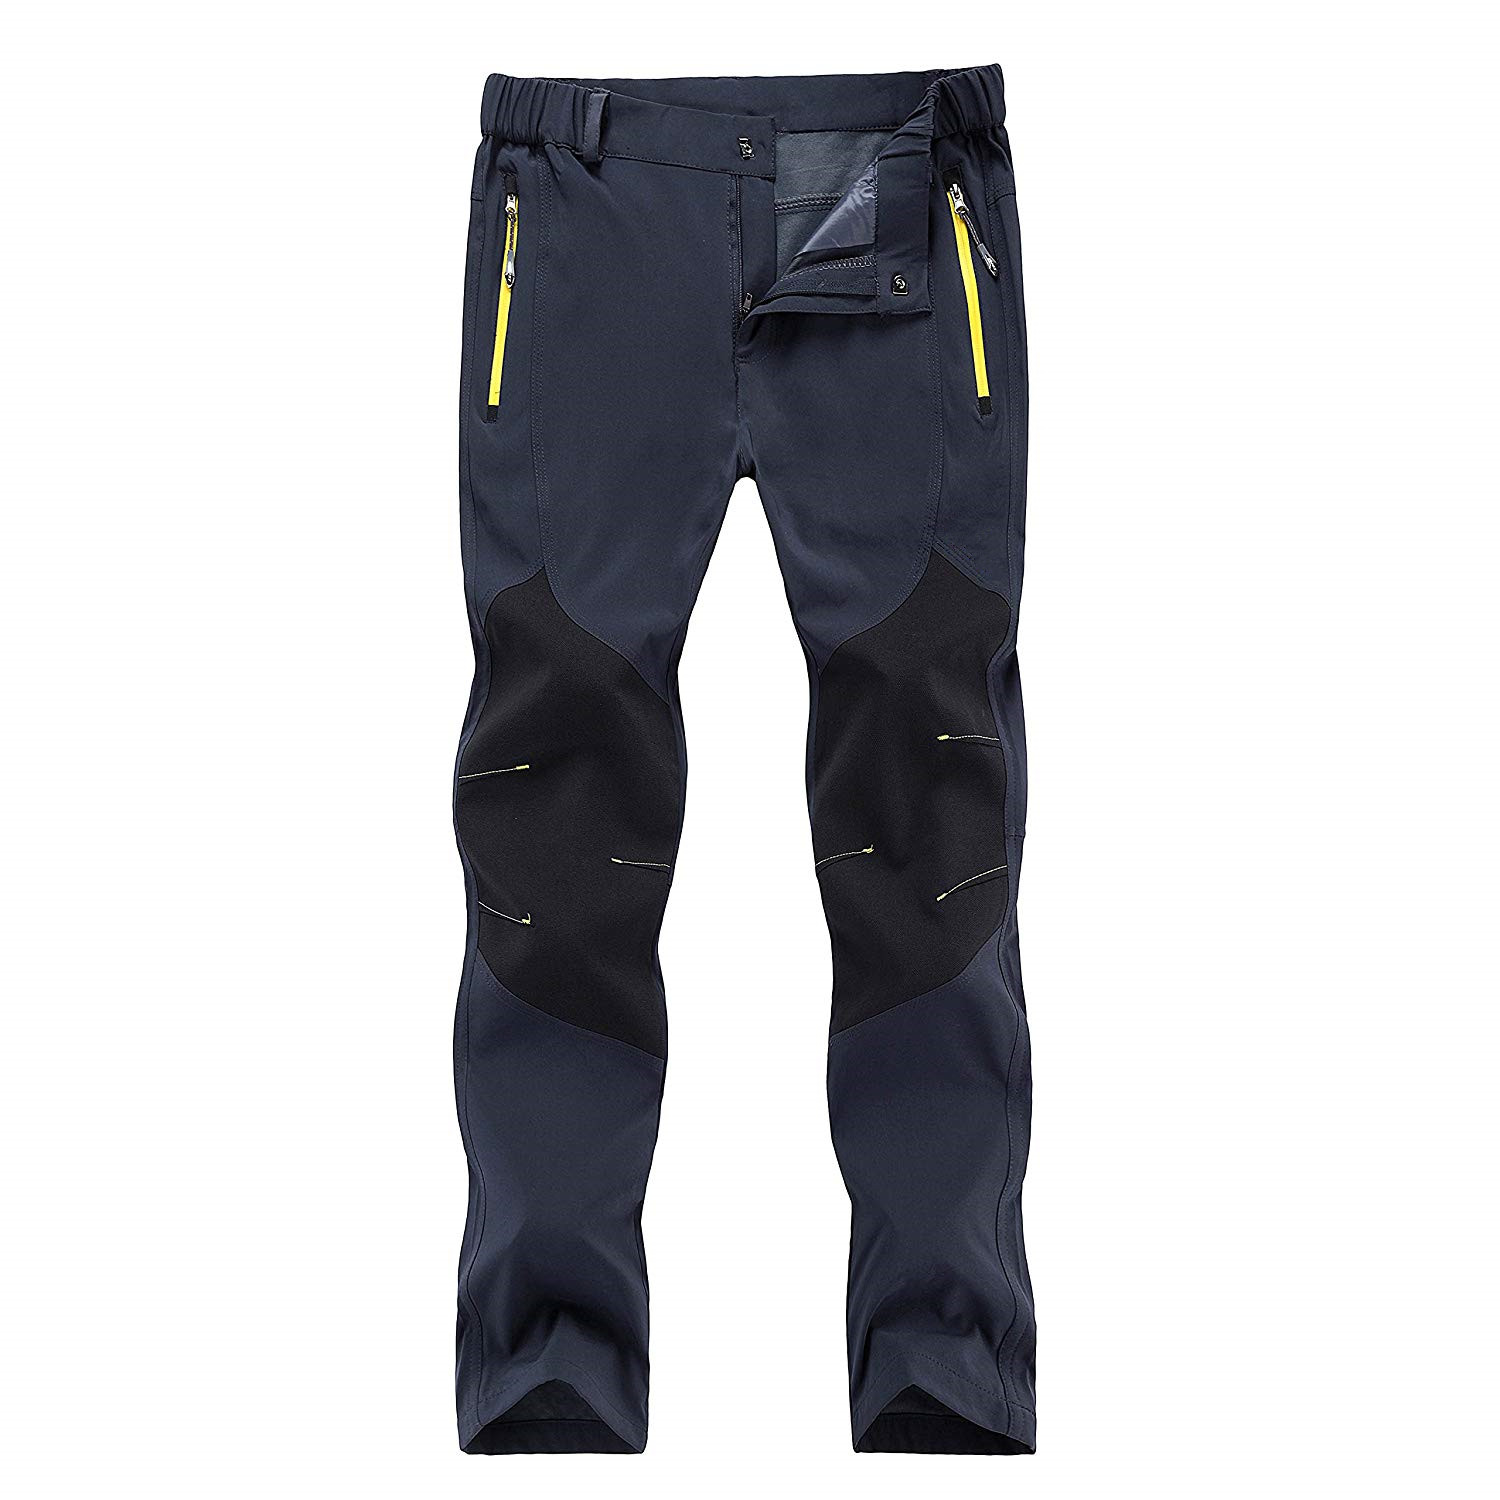 waterproof walking trousers.jpg